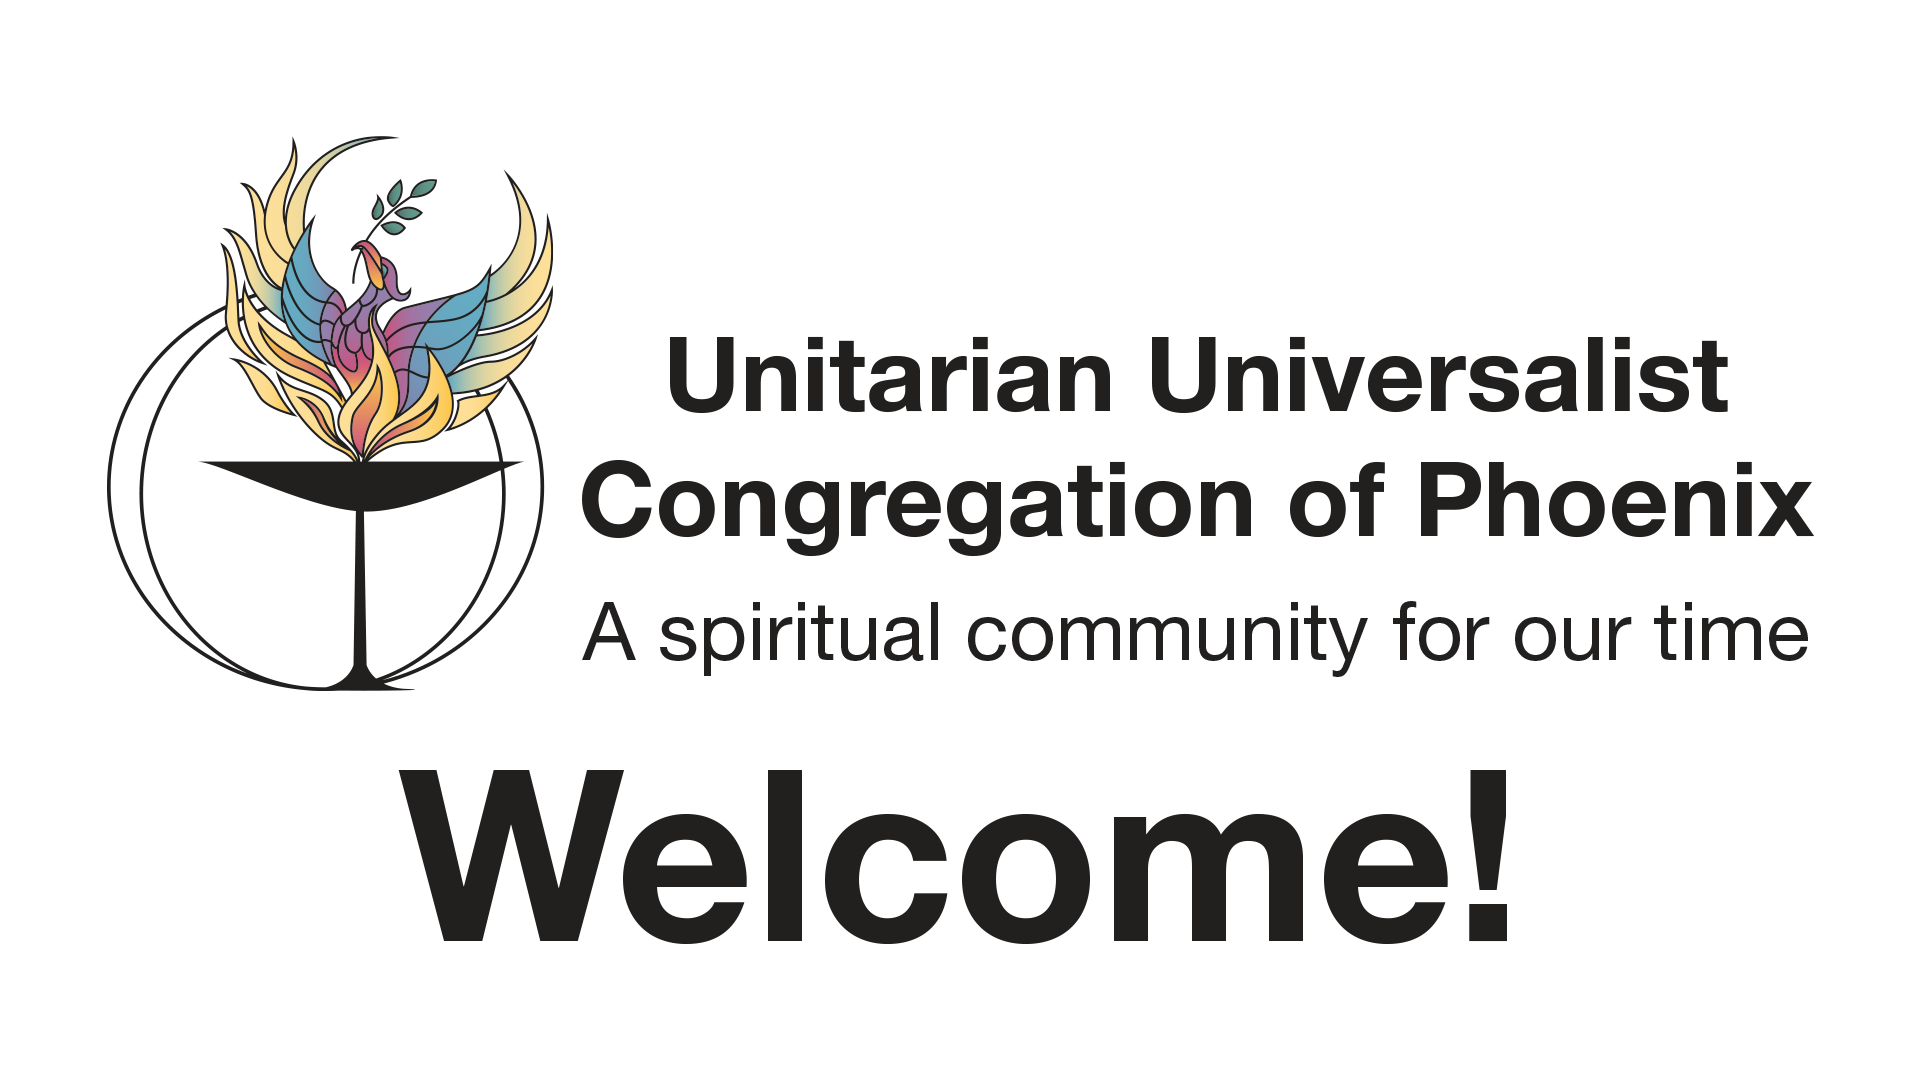 Unitarian Universalist Congregation of Phoenix - A spiritual community for our time - Welcome